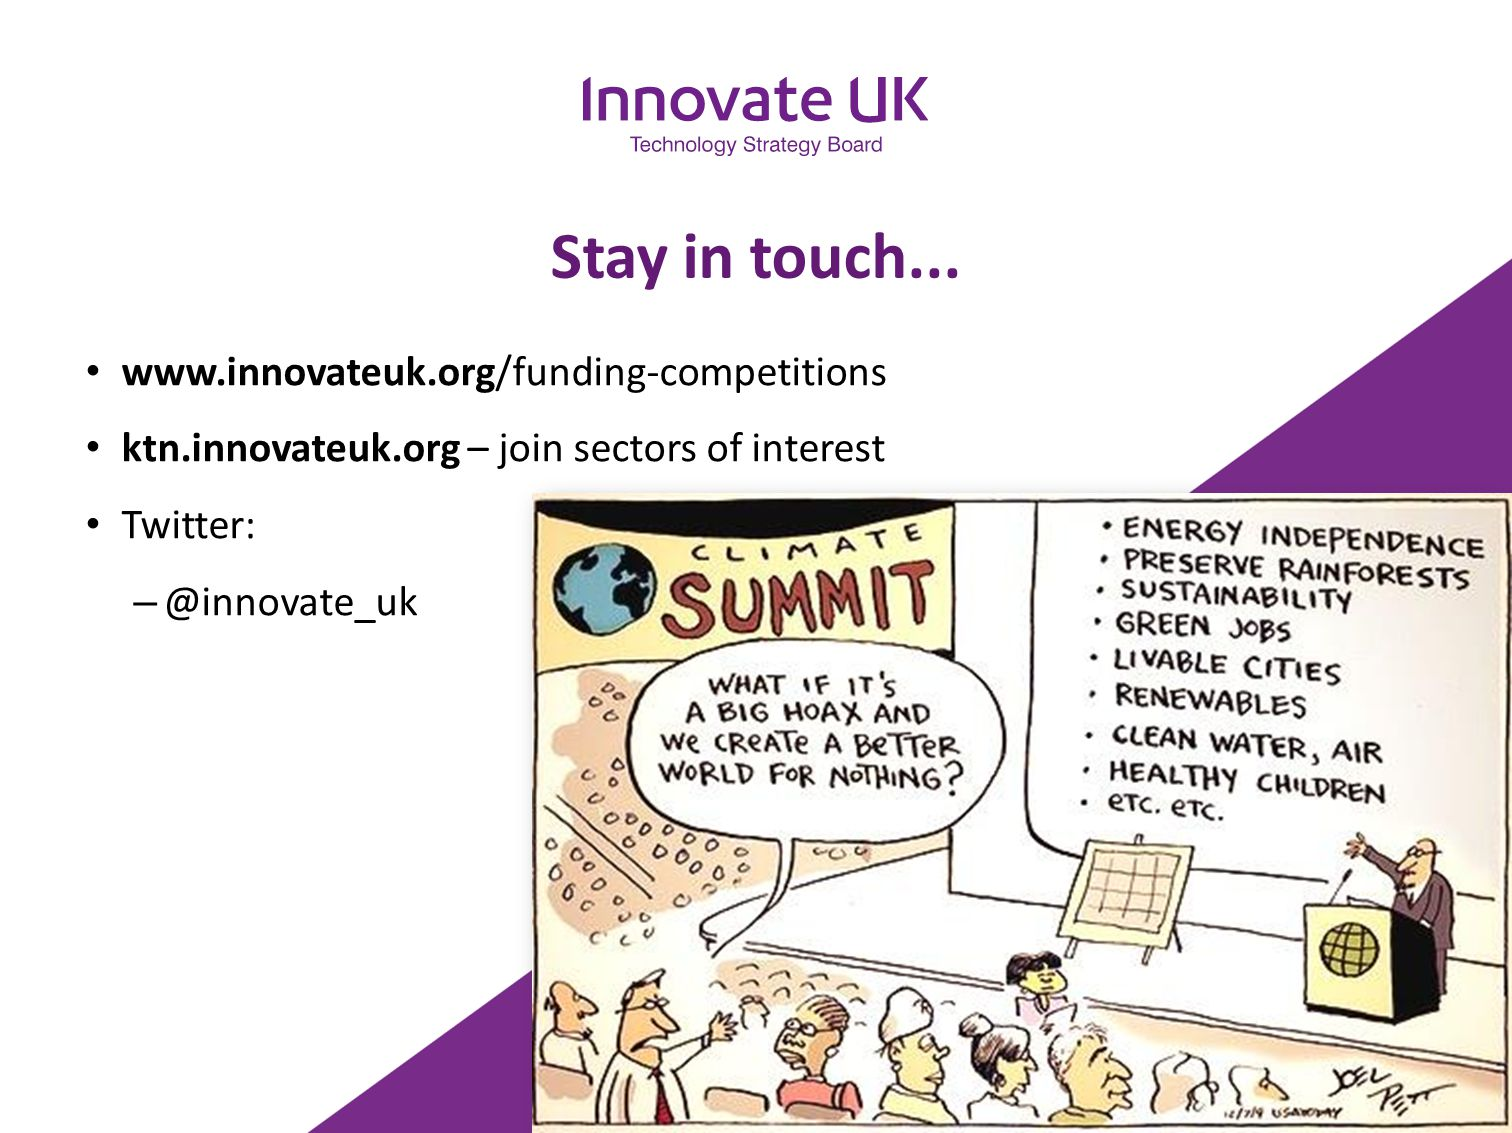 Stay in touch... www.innovateuk.org/funding-competitions ktn.innovateuk.org – join sectors of interest Twitter: – @innovate_uk